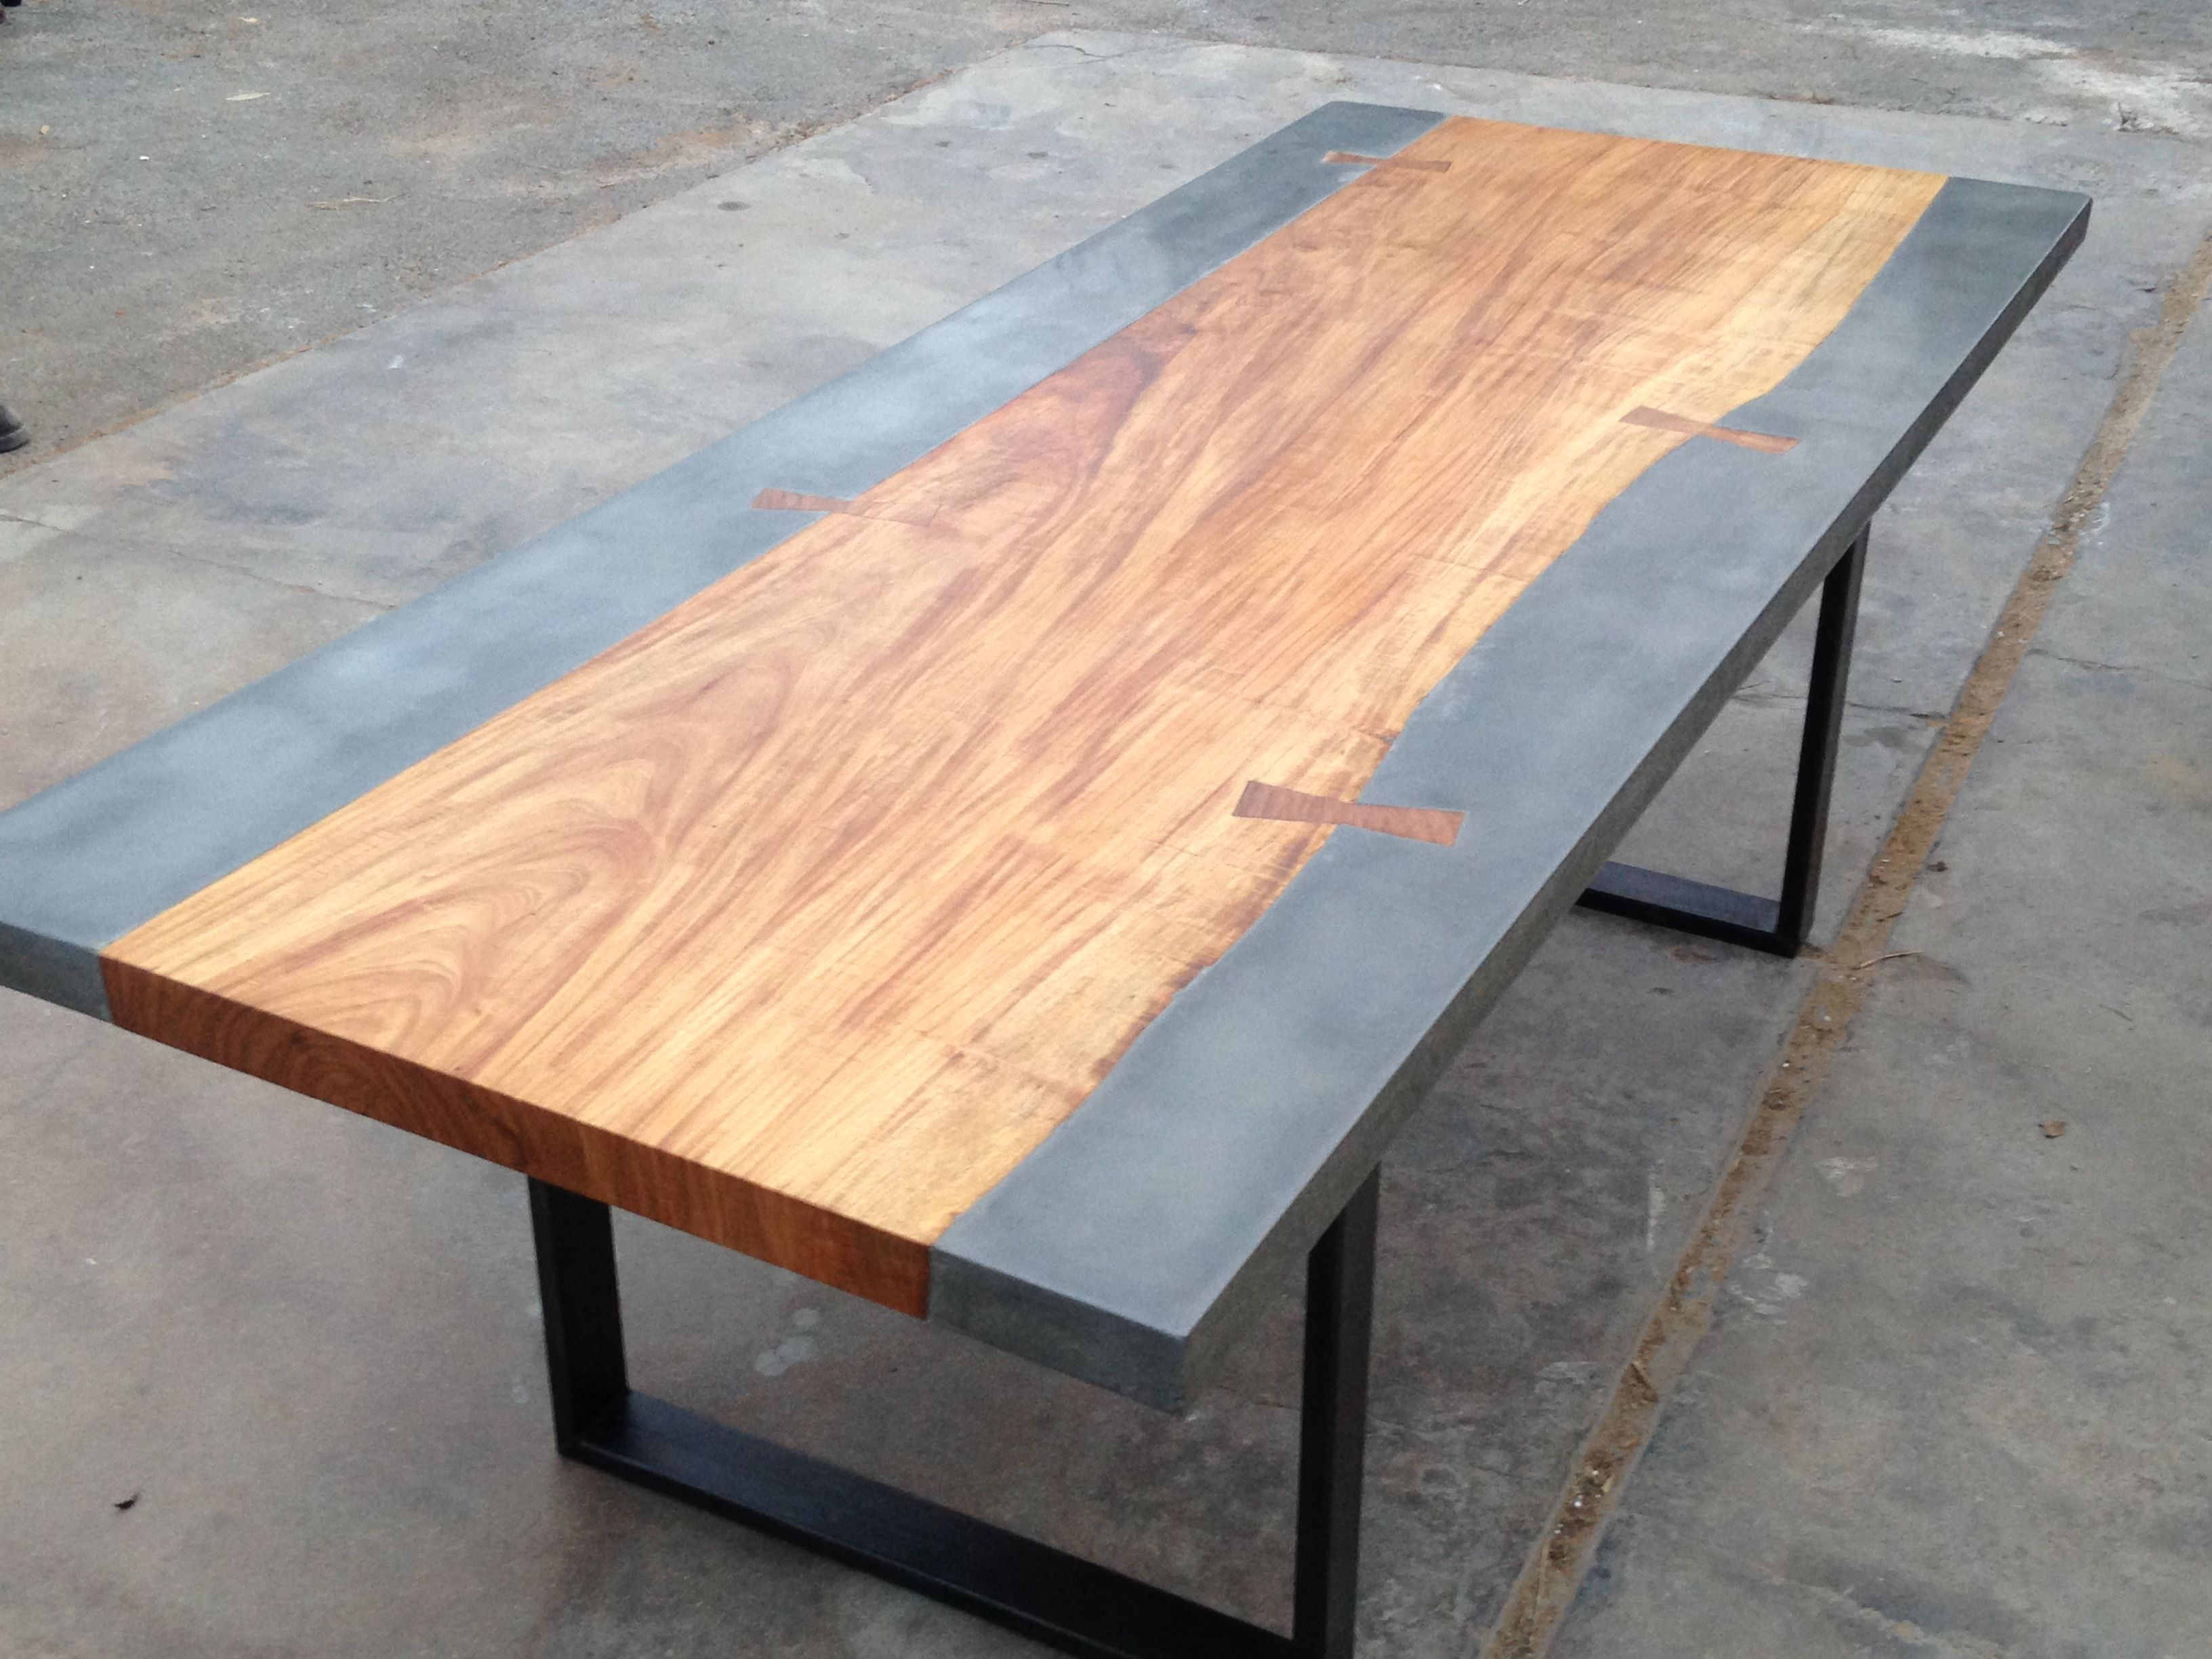 Custom Concrete And Exotic Wood Dining Conference Table  : 826301062020 from www.custommade.com size 3264 x 2448 jpeg 730kB